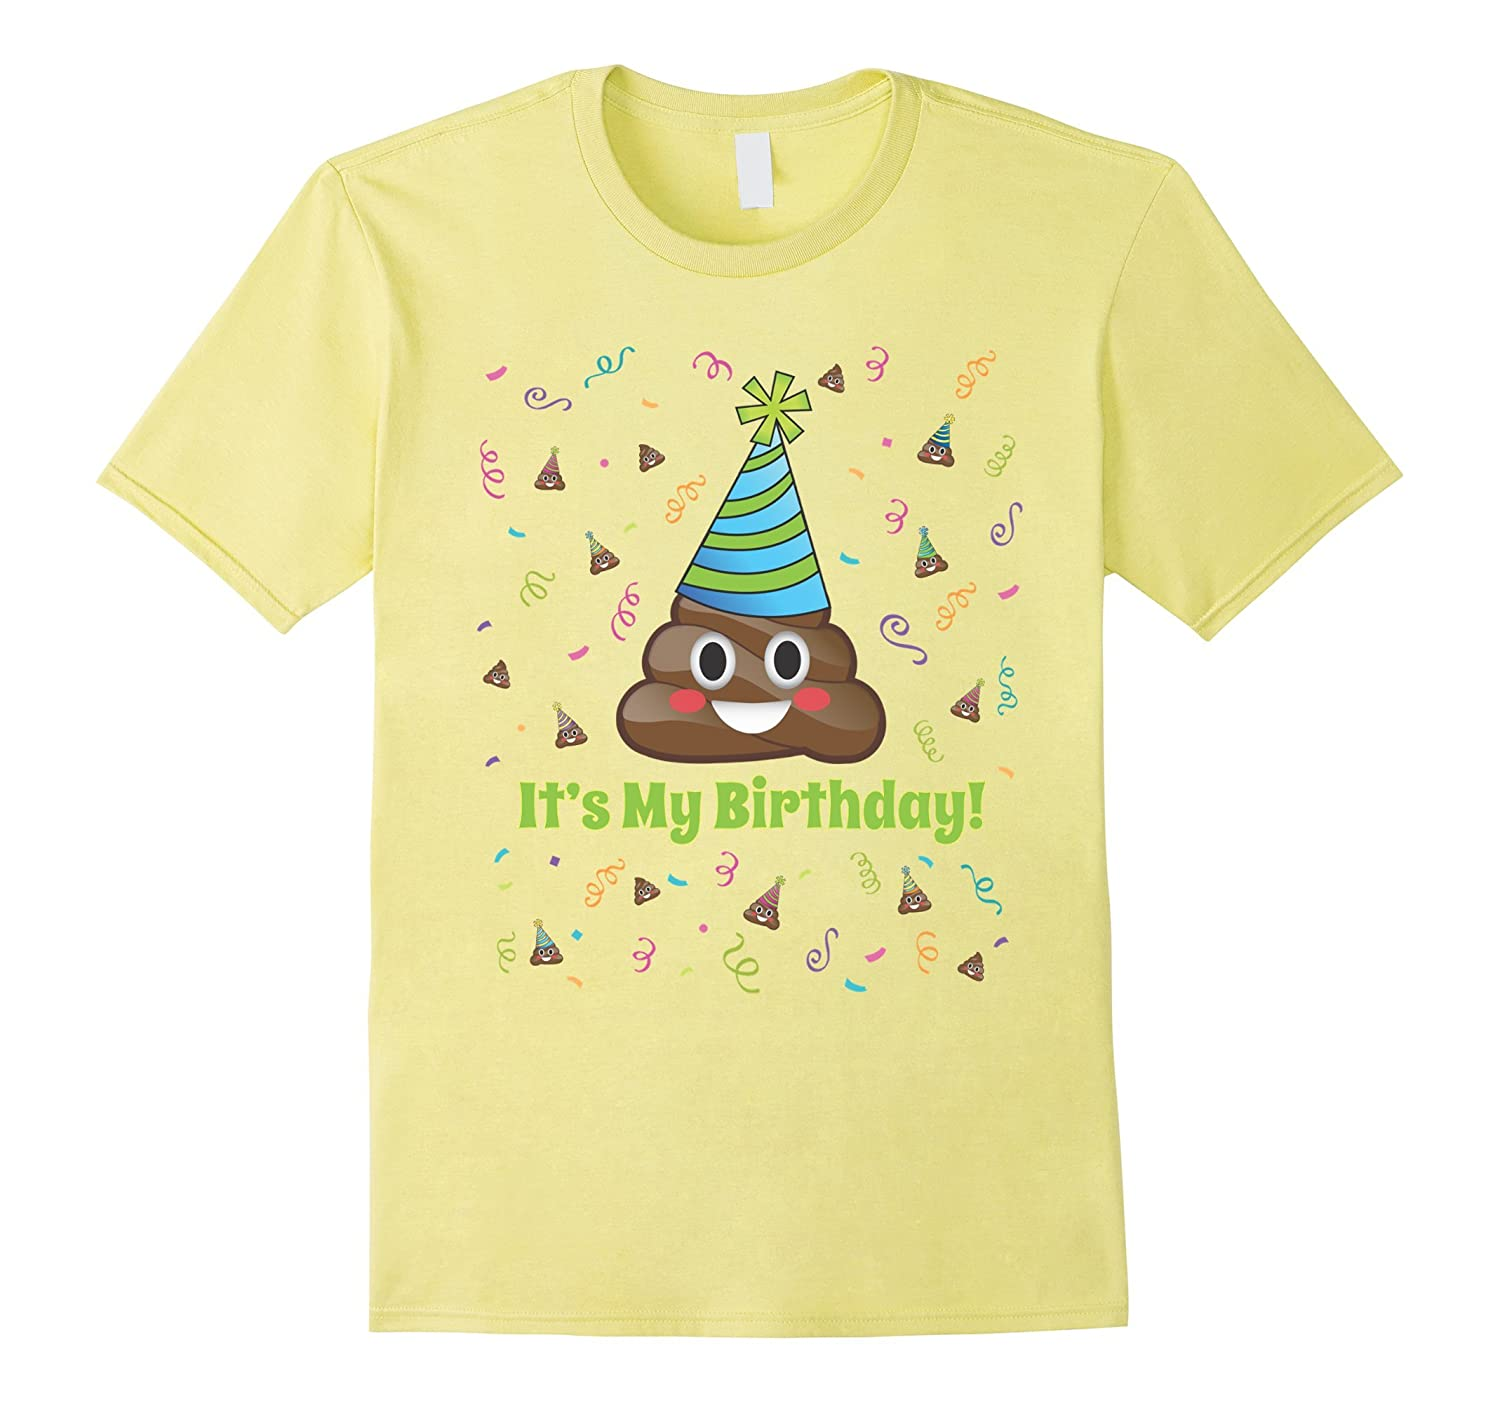 Poop Emoji Its My Birthday Shirt Girls Boys Teens Adult PL